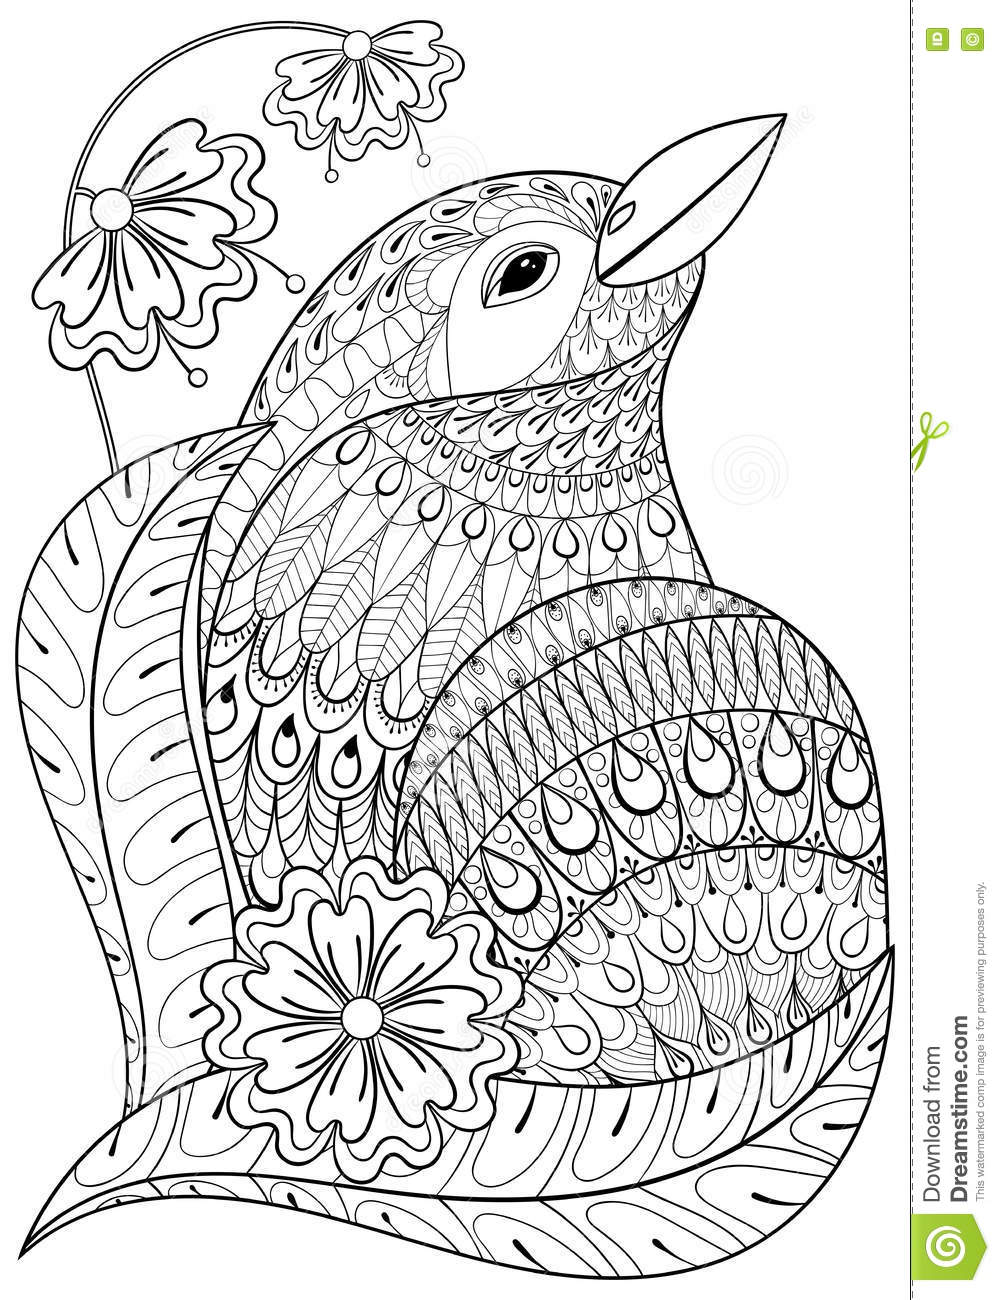 Boho Adult Coloring Coloring Pages